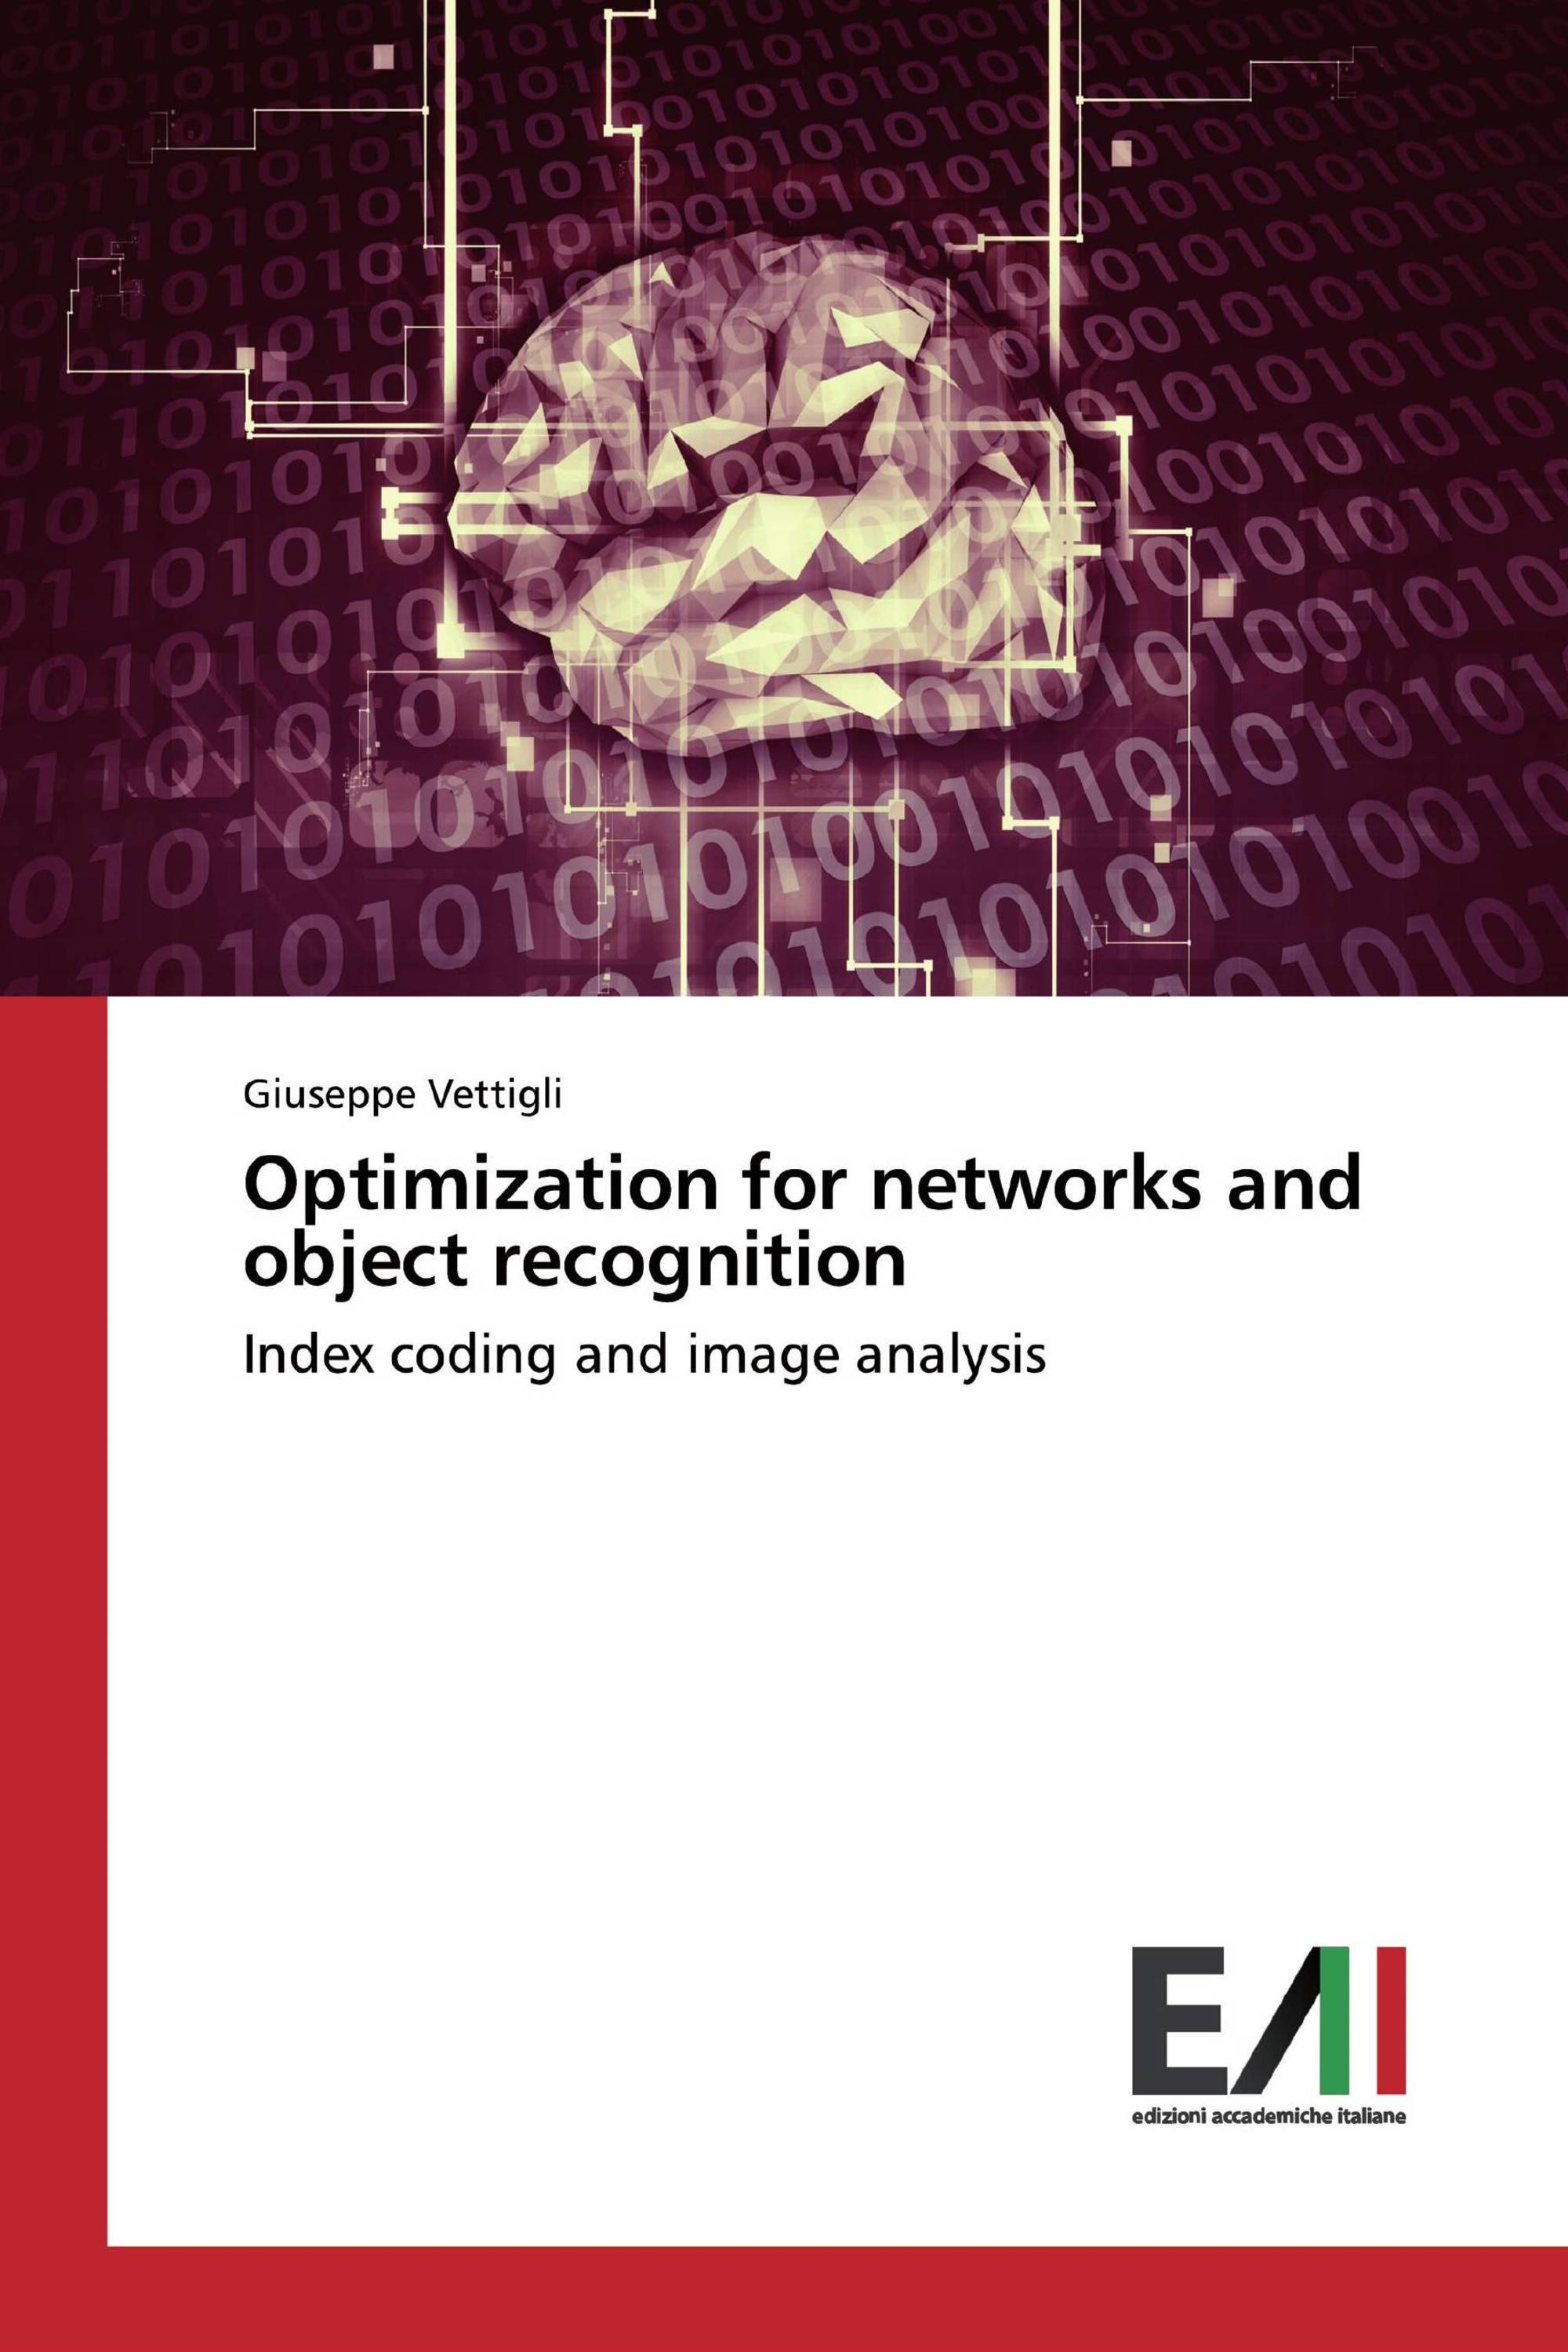 Optimization for networks and object recognition